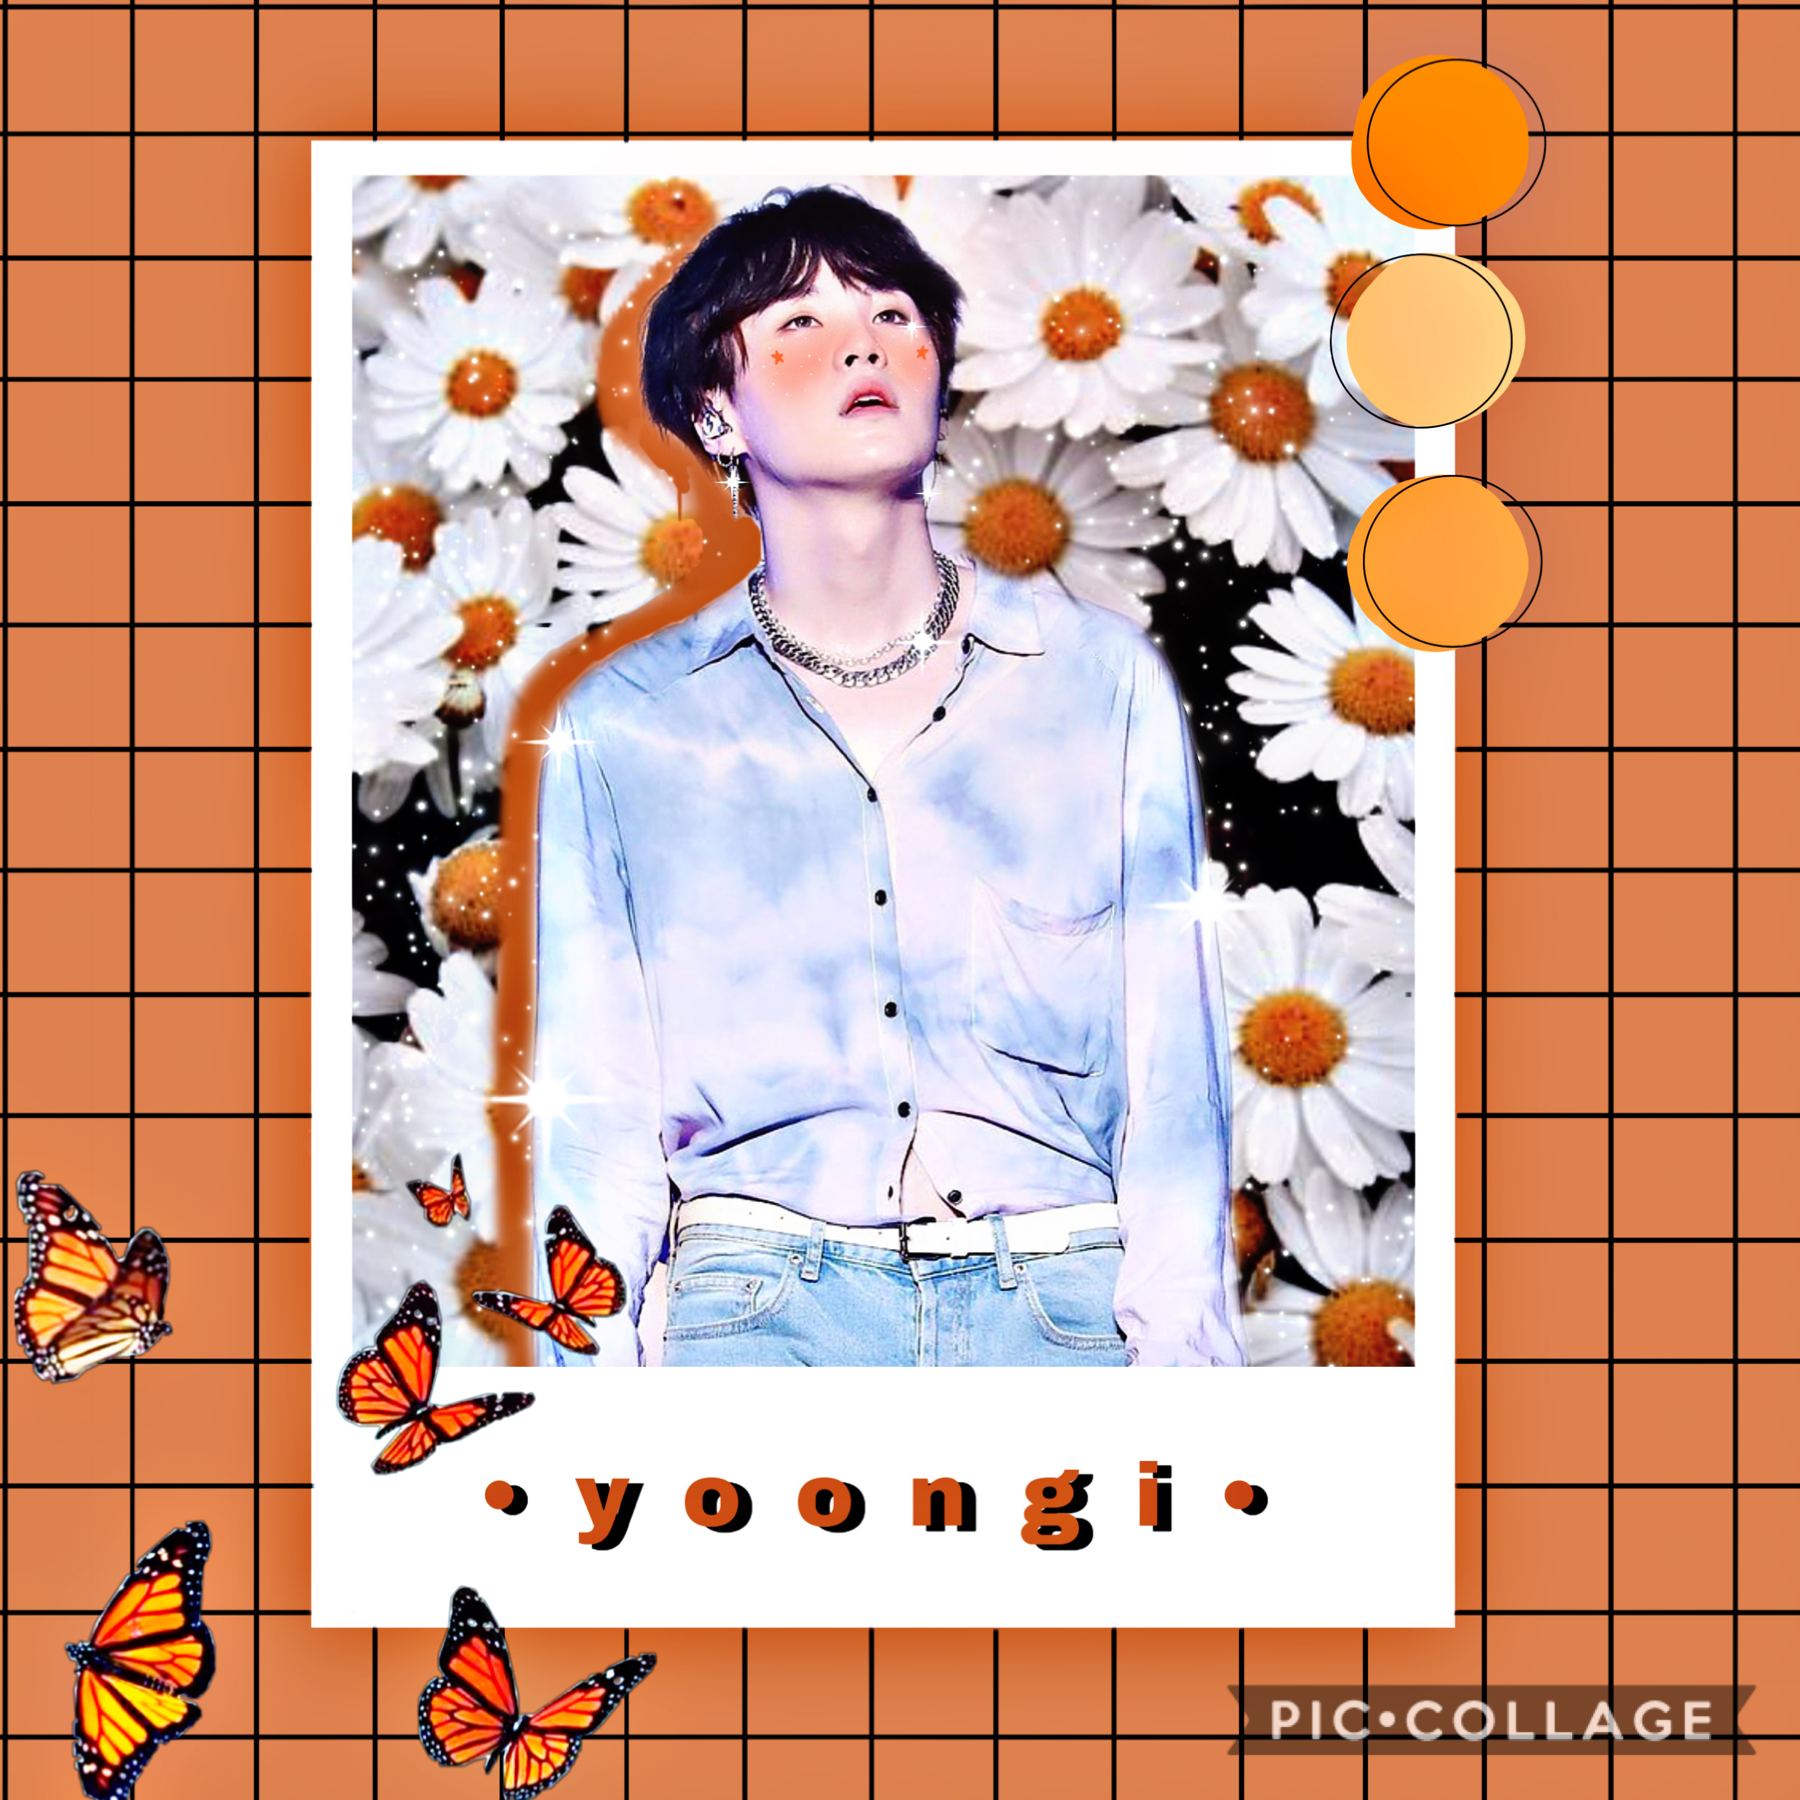 •🧡• Hey guys!! I'm really sorry that I took so long to post. This was the last week of school for me and things were pretty bust so I didn't get time to post. Anyway, how's everyone doing? QOTD: What sports do you guys play?  AOTD: I am play tennis, lacro